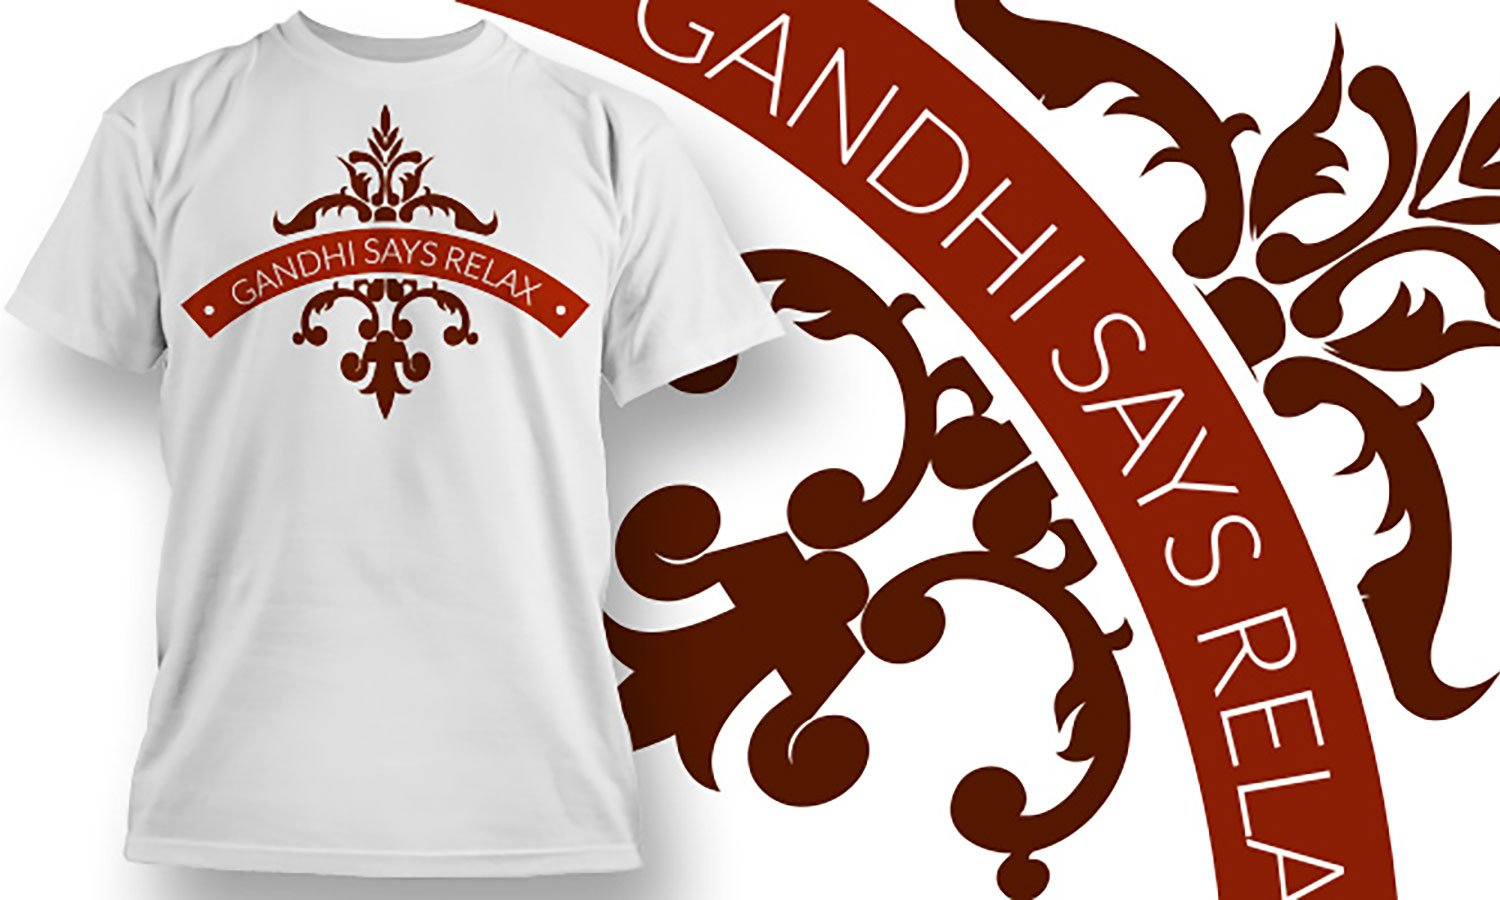 Gandhi Says Relax - Printed T-Shirt for Men, Women and Kids - TS398